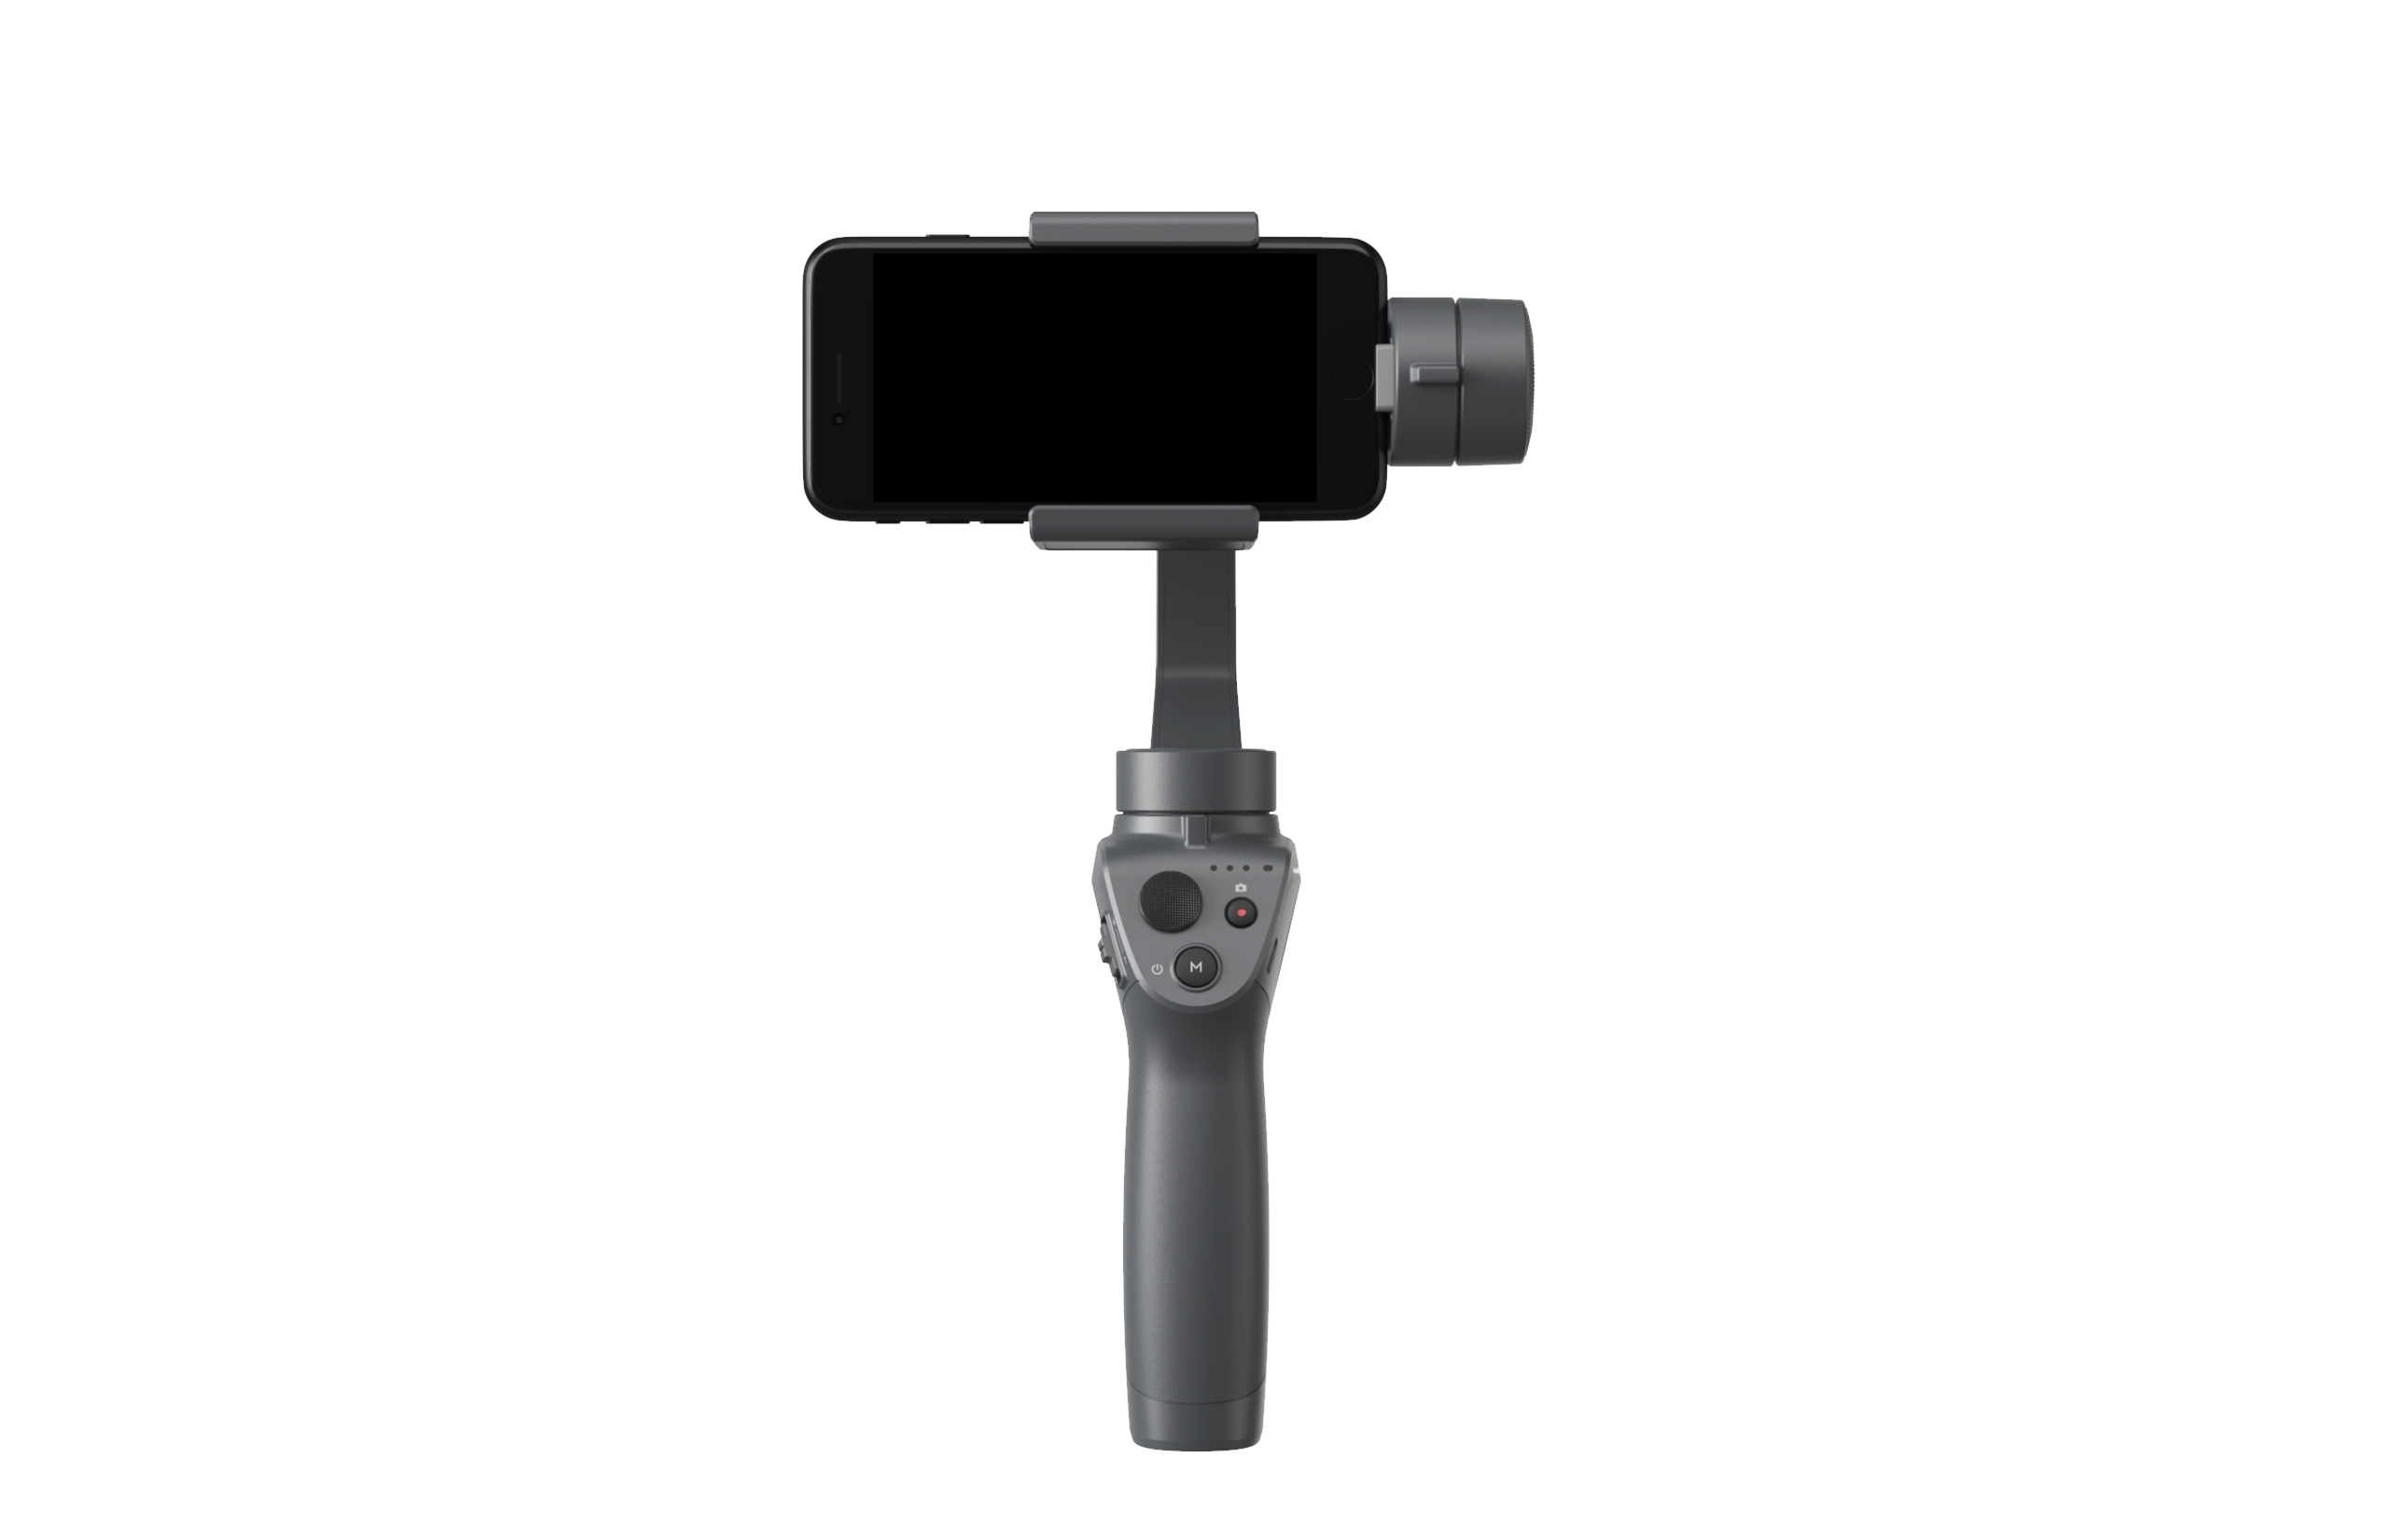 DJI Osmo Mobile 2 Gimbal Offers Better Battery Life, Price